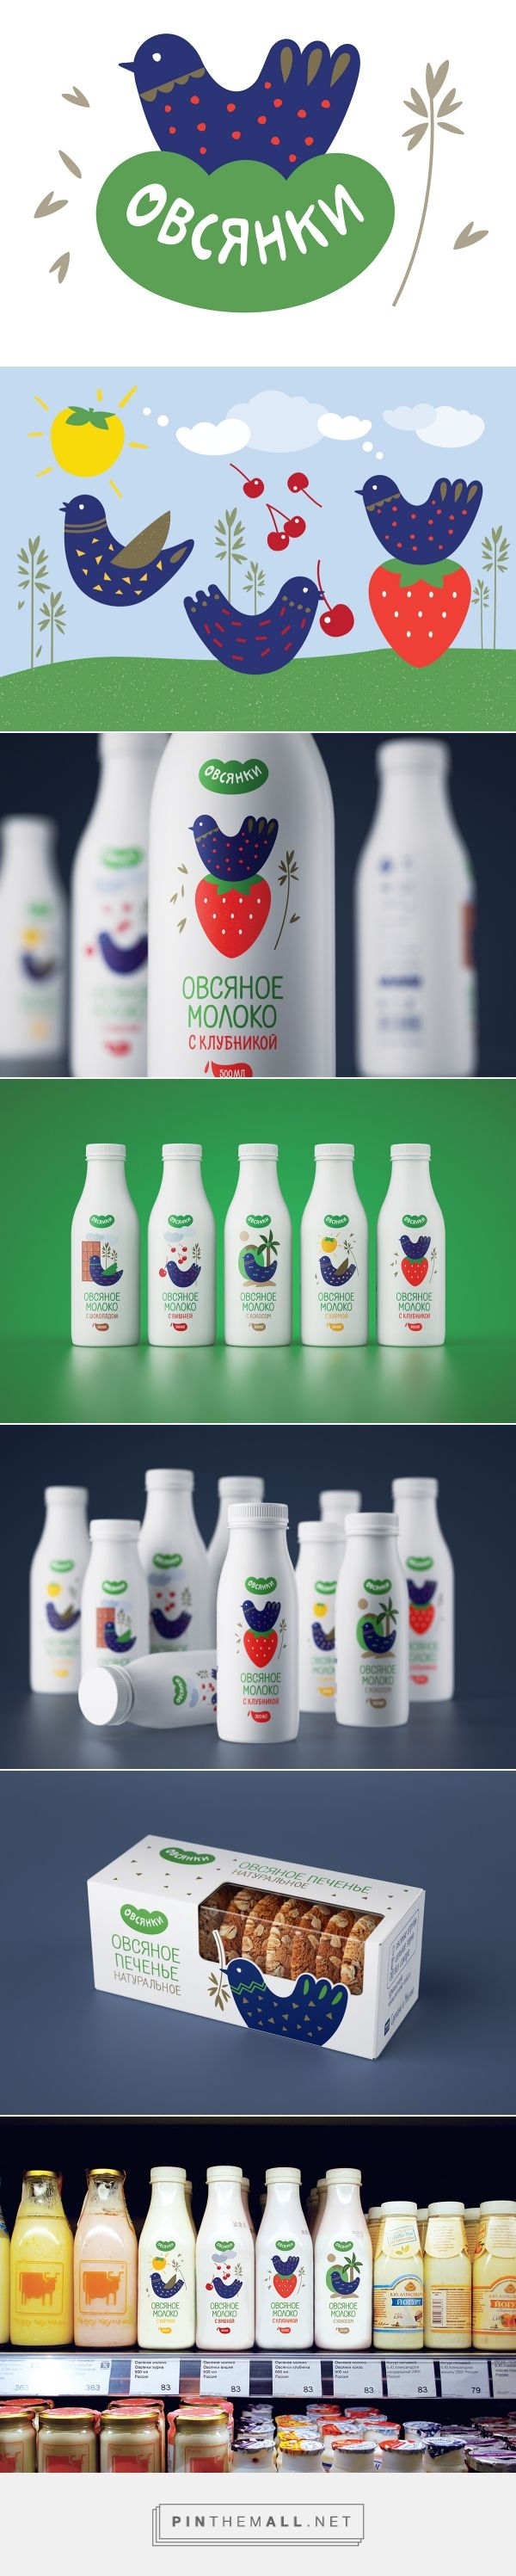 Овсянки / Oatbirds oat milk packaging by Daria Zhuchkova via Behance curated by Packaging Diva PD. A highly natural and tasty oat milk and is a diploma project at British High School of Art and Design.